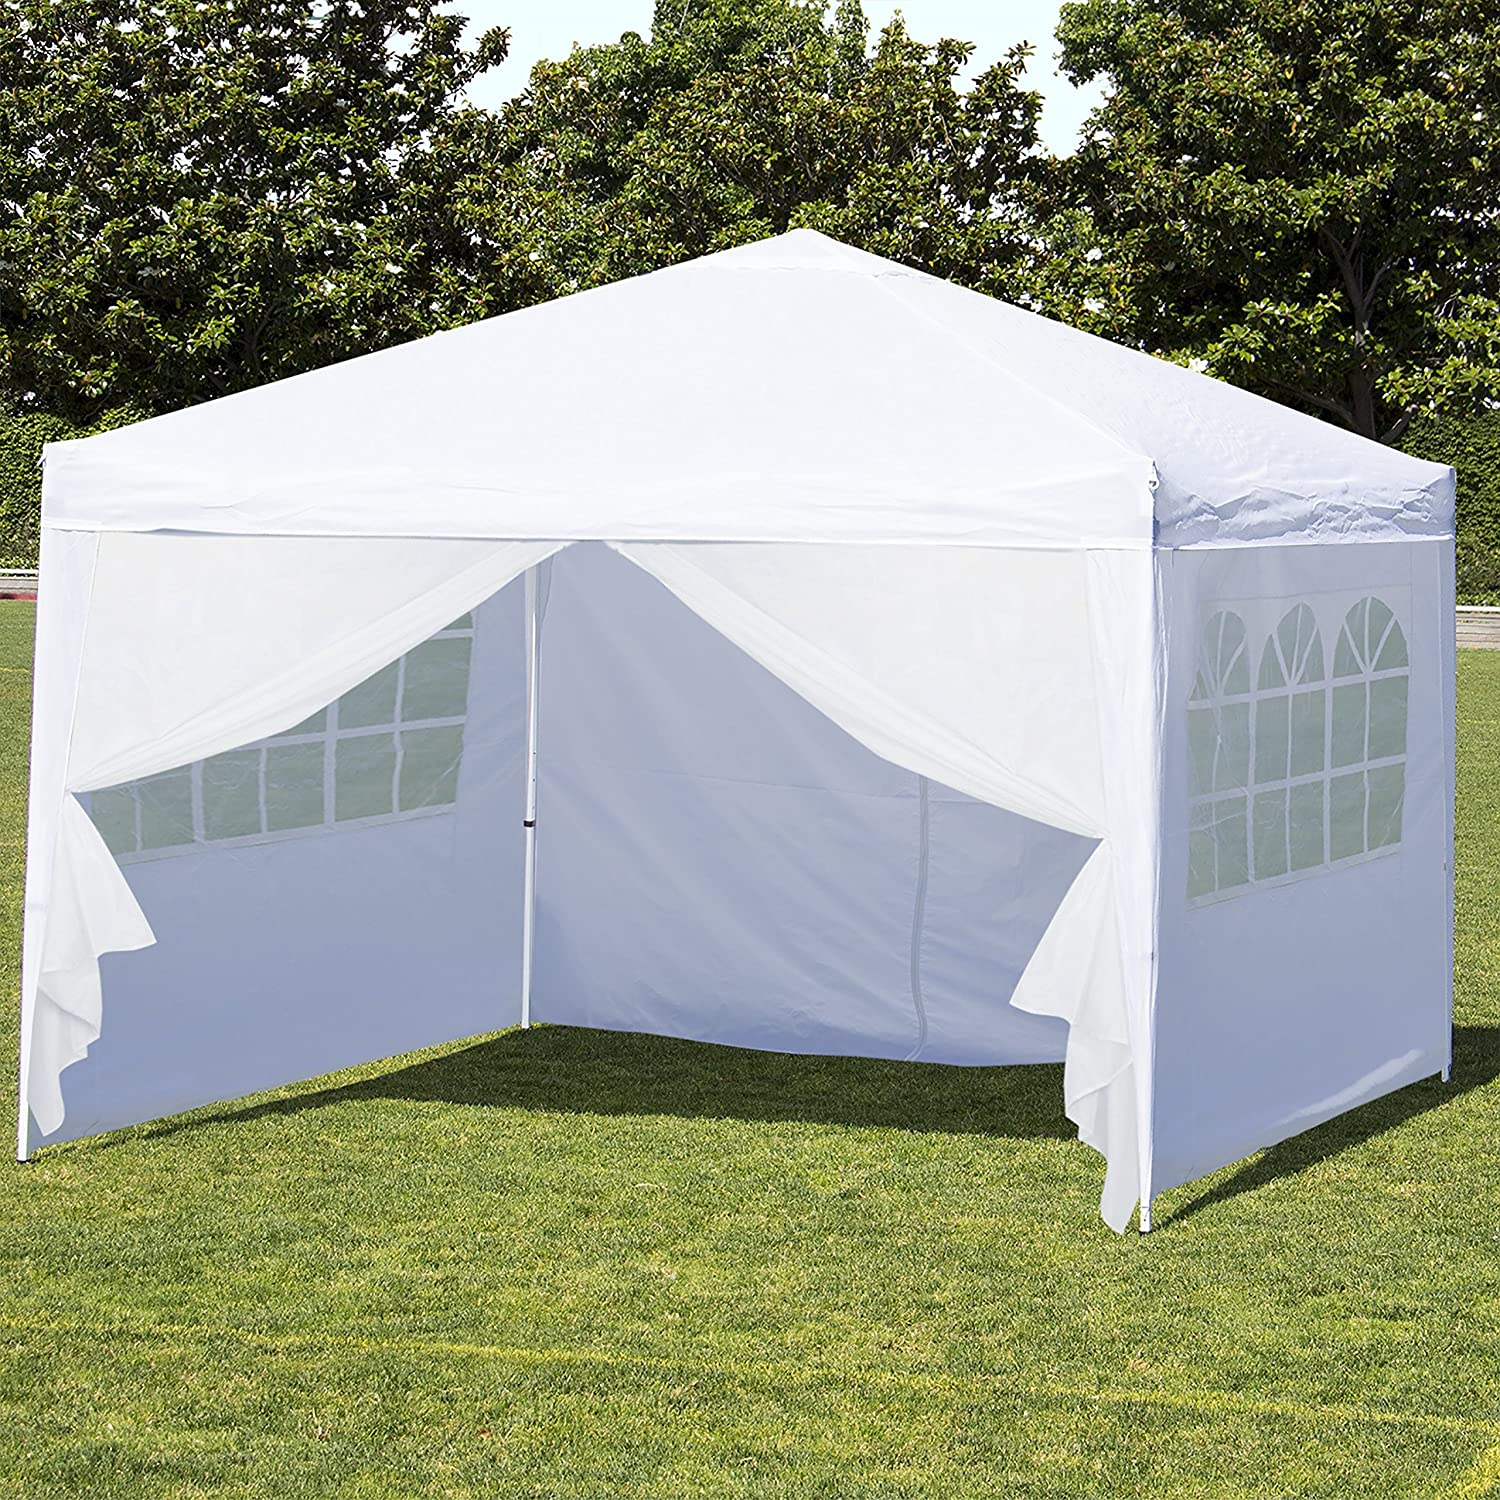 Best Choice Products 10u0027 x 10u0027 EZ Pop Up Canopy Tent Side Walls u0026 : 10x20 pop up canopy with sidewalls - memphite.com